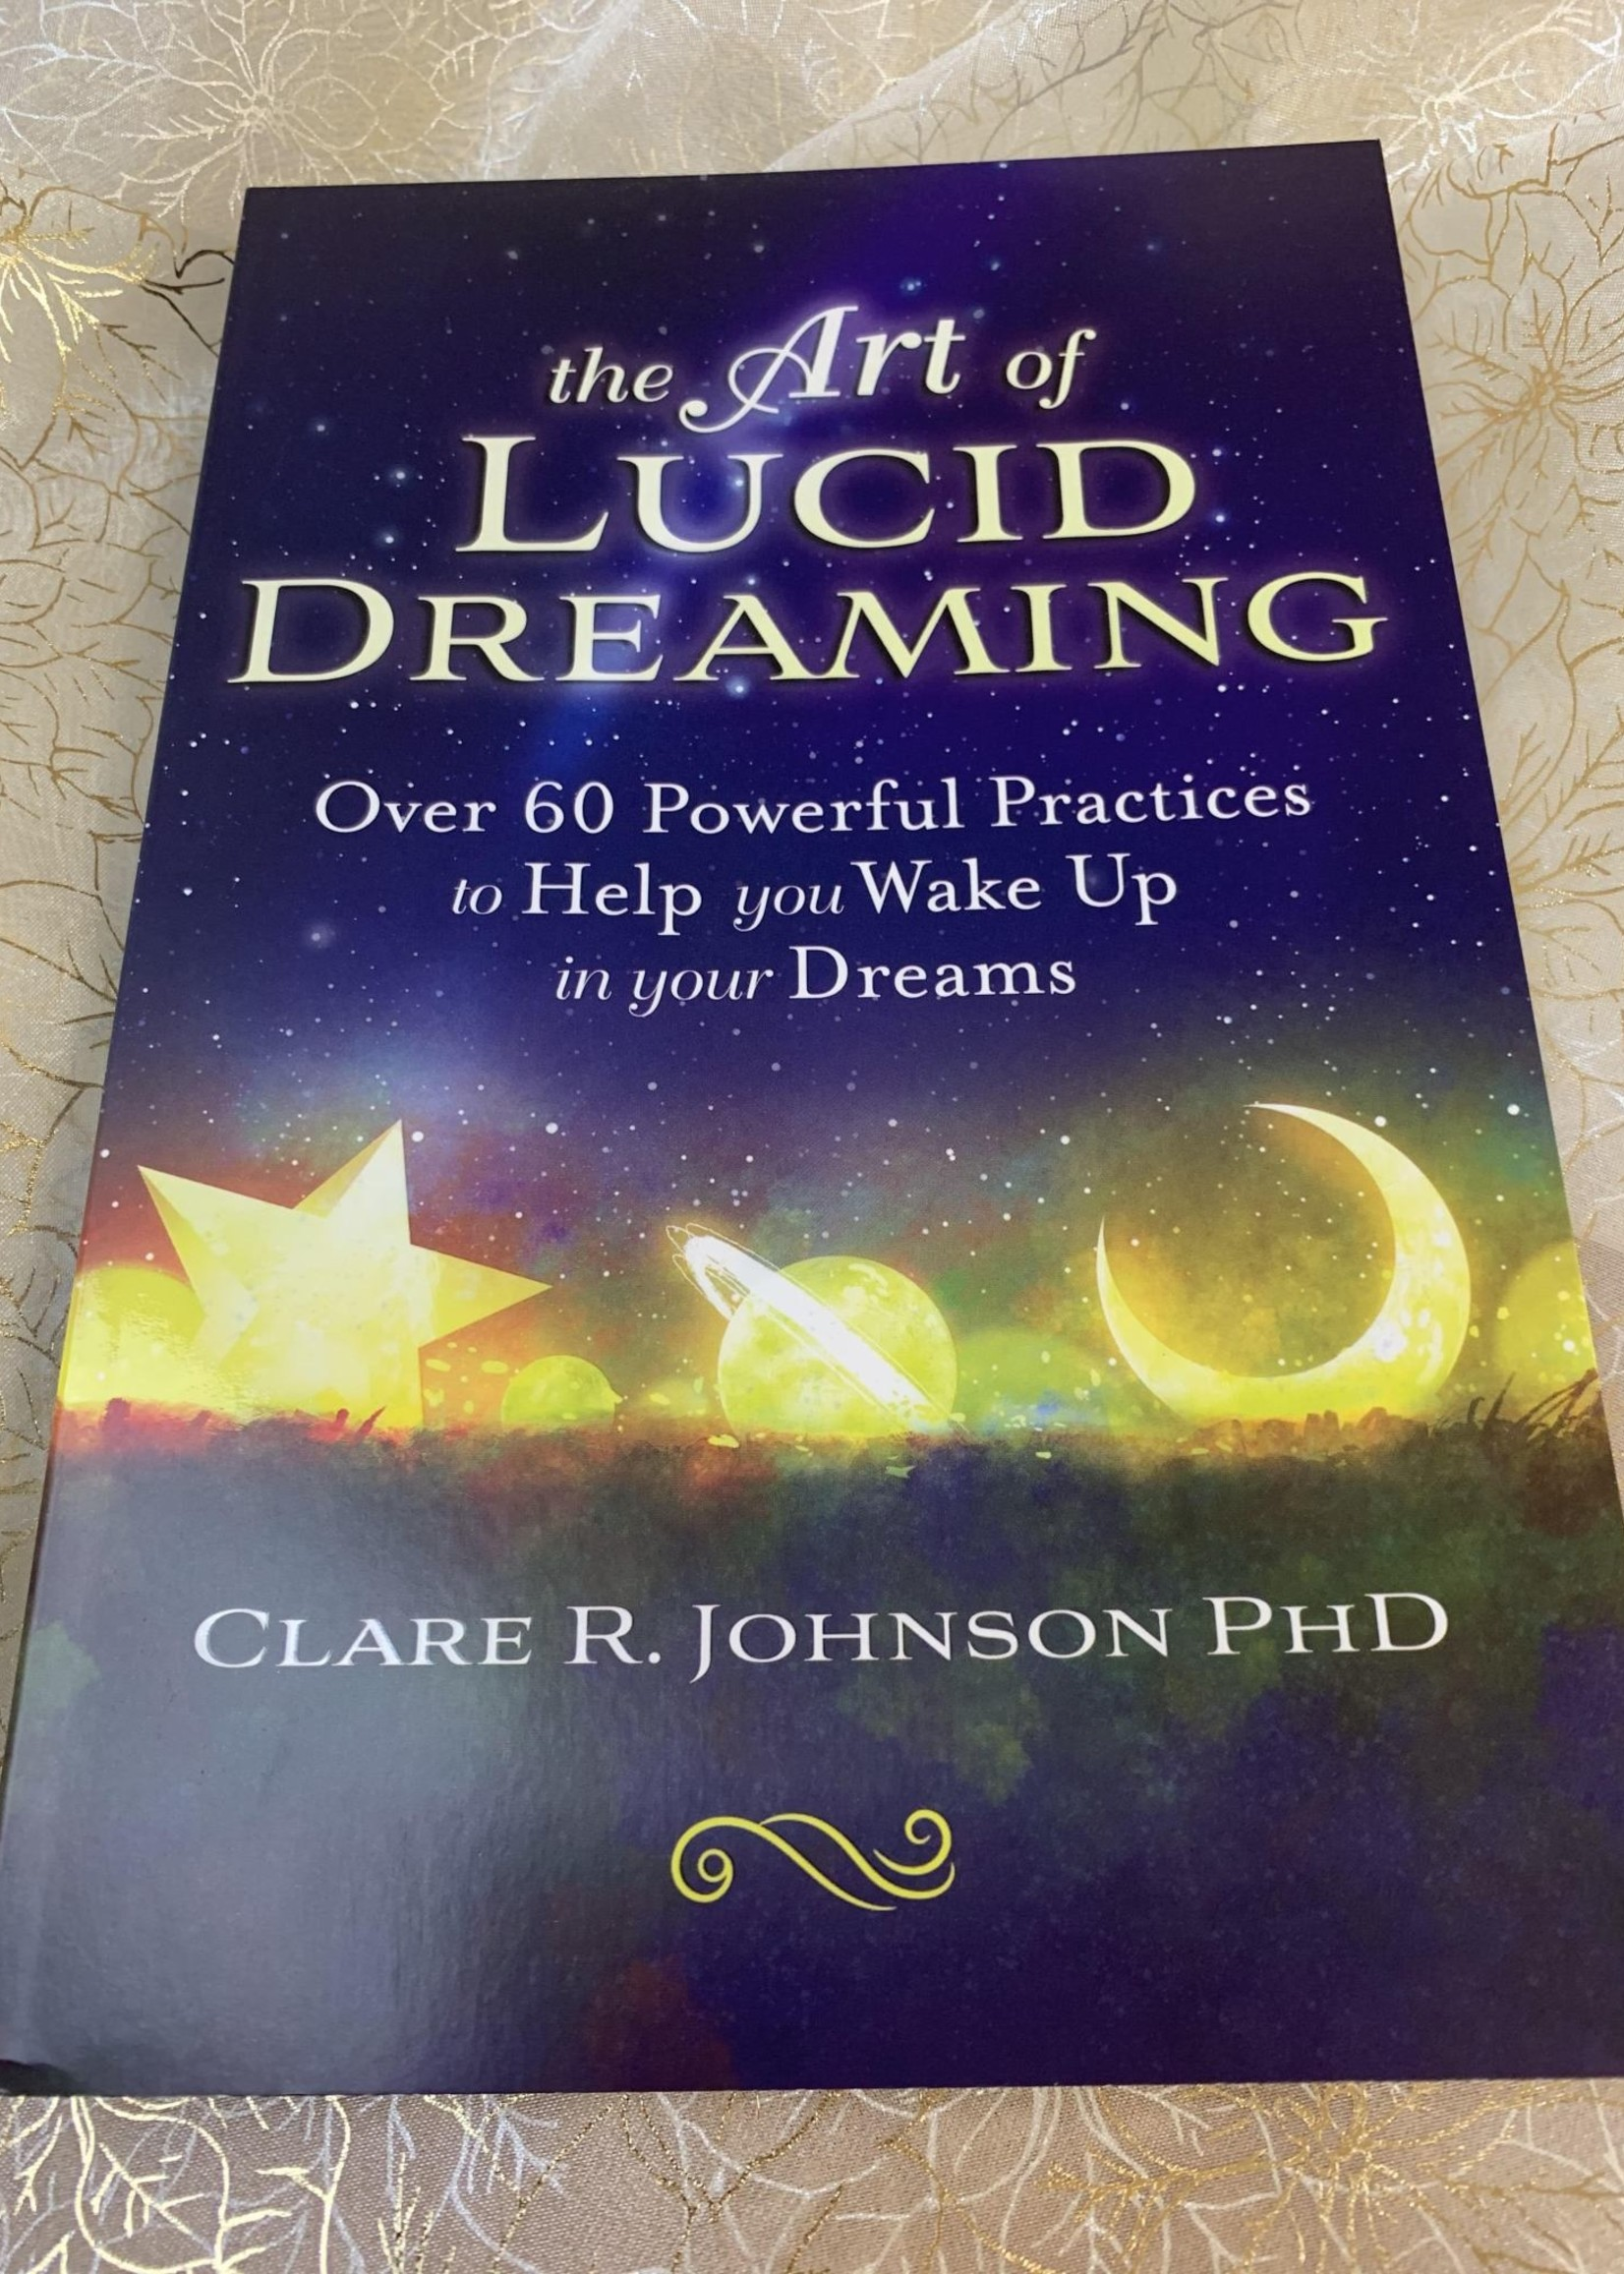 The Art of Lucid Dreaming - Clare R. Johnson PhD